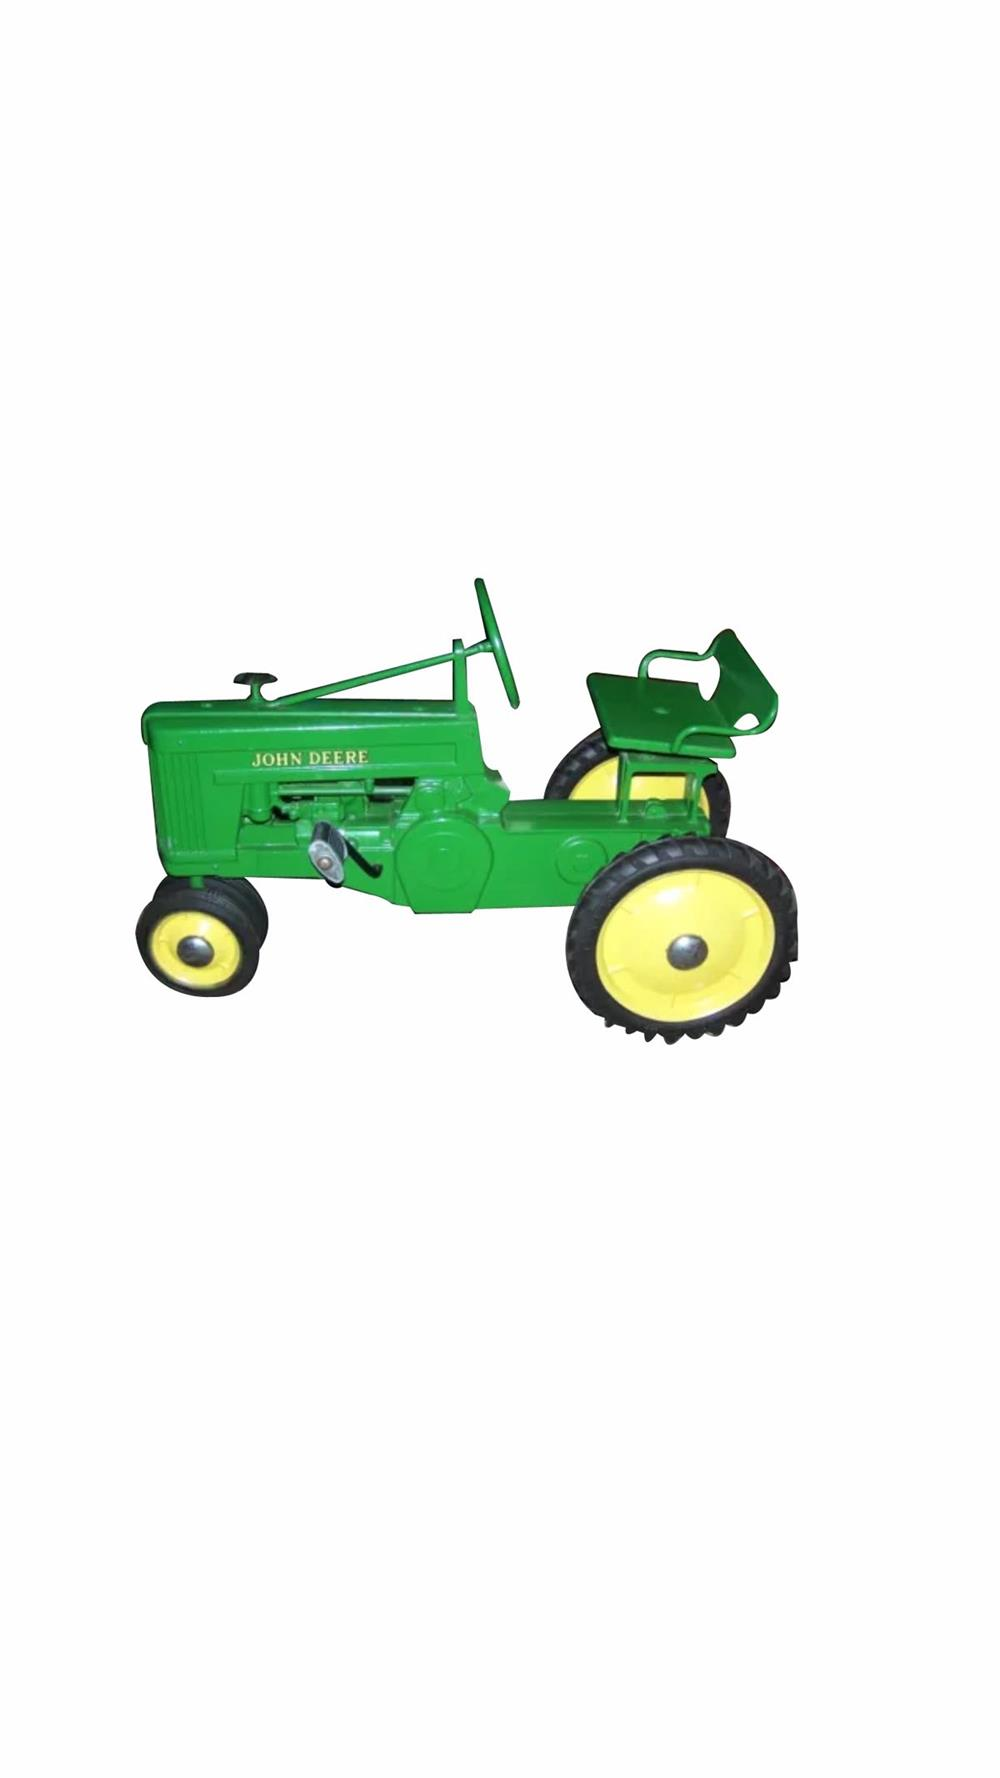 Phenomenal 1954 John Deere pedal tractor by Eska. Restored to perfection! - Front 3/4 - 186413